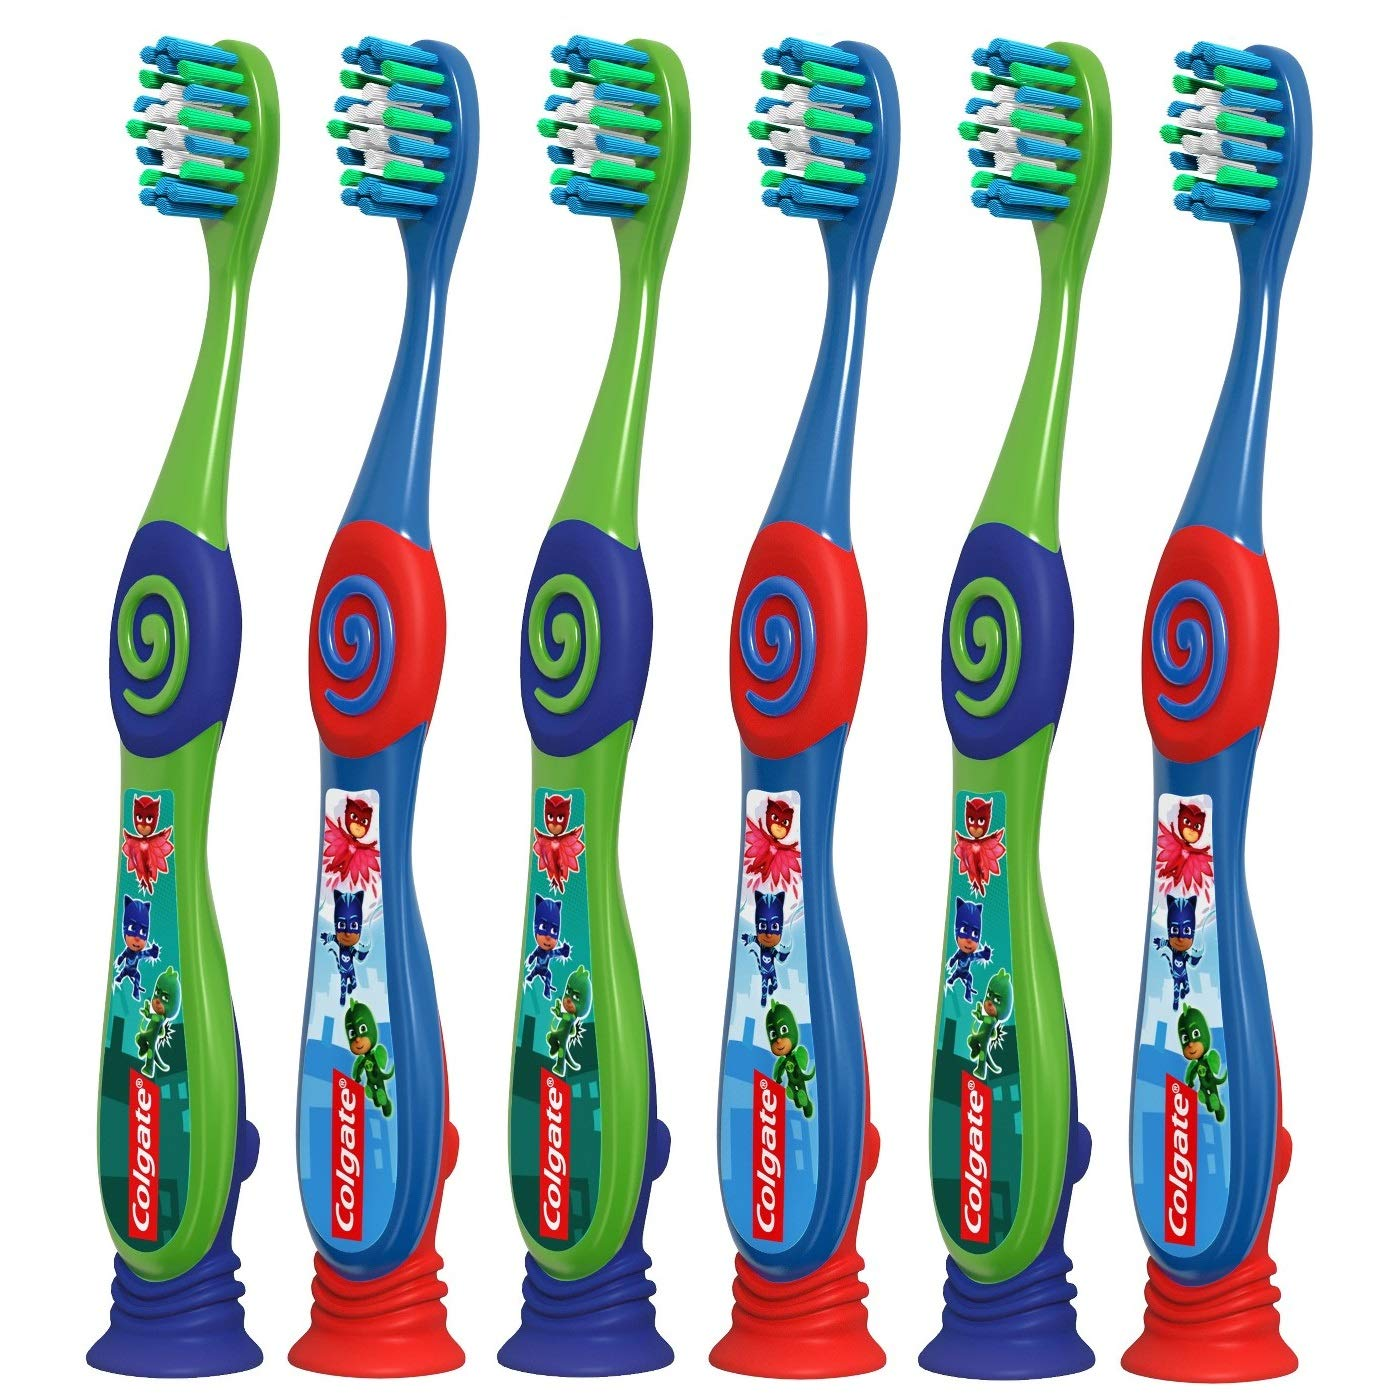 Colgate PJ Masks Toothbrush for Toddlers & Little Children with Suction Cup, Kids 2-5 Years Old, Extra Soft, Pack of 6